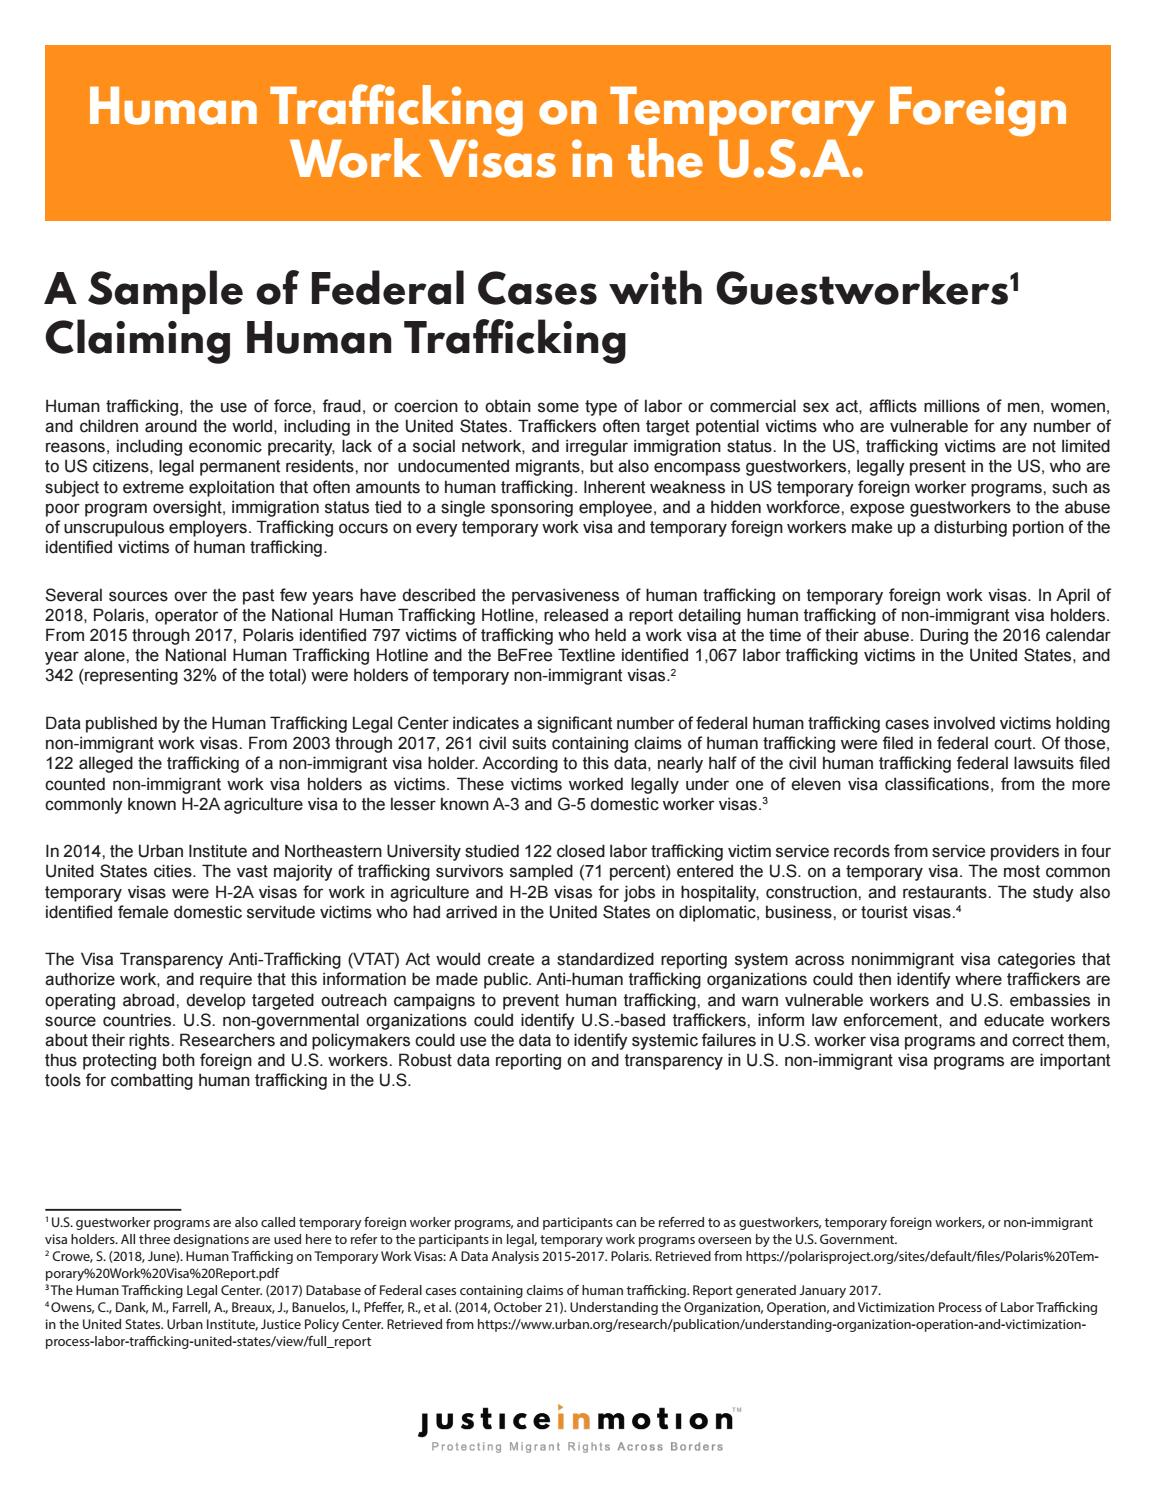 Human Trafficking on Temporary Foreign Work Visas in the